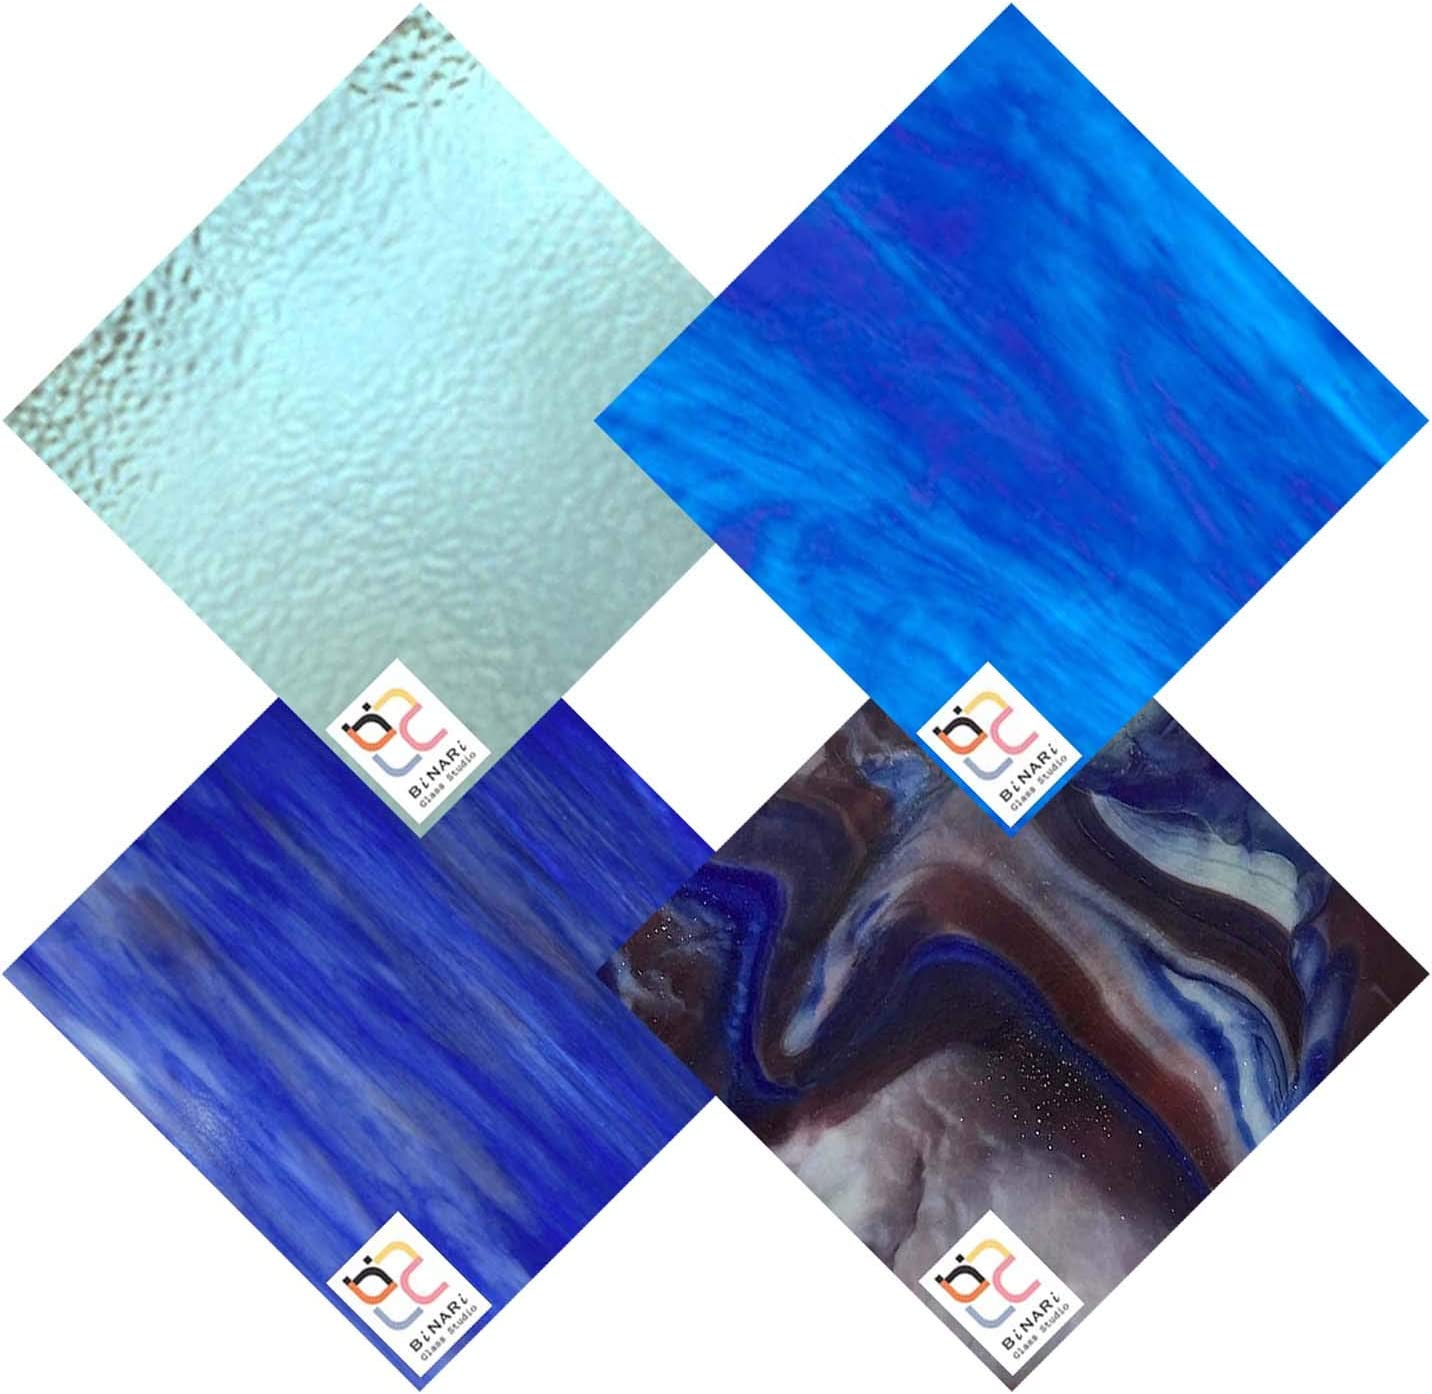 Wissmach 4 Fort Worth Mall Sheet Al sold out. Mixed Color Blue Pack Glass Stained Variety